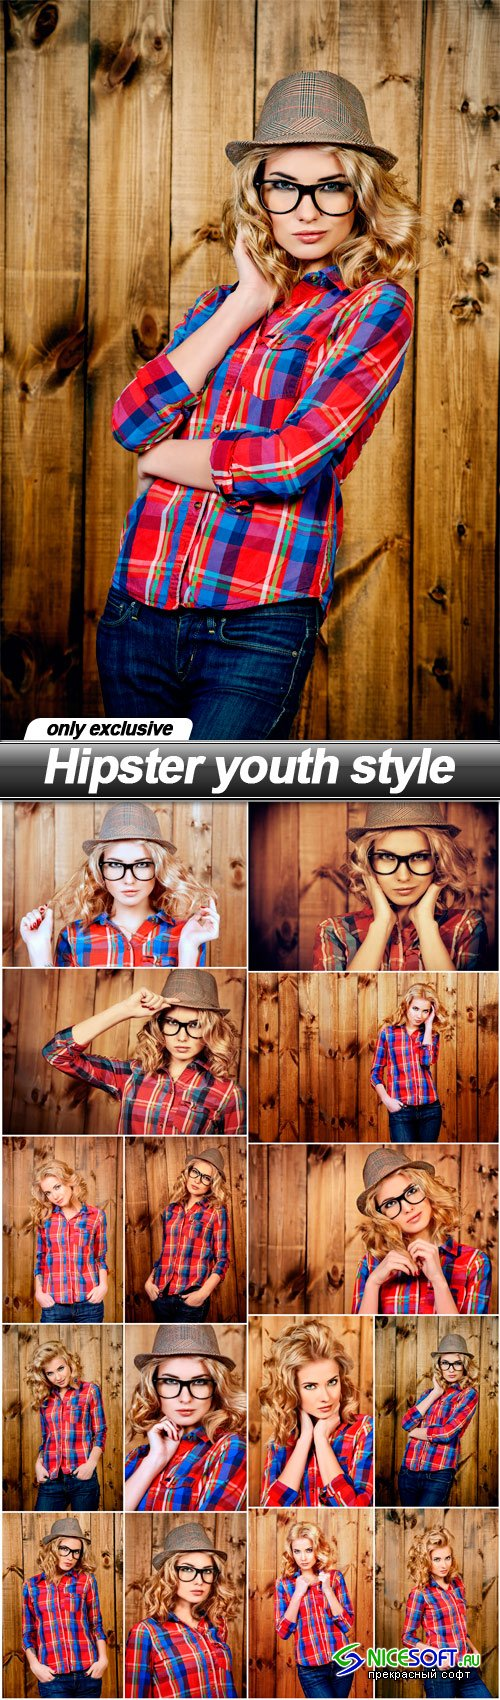 Hipster youth style